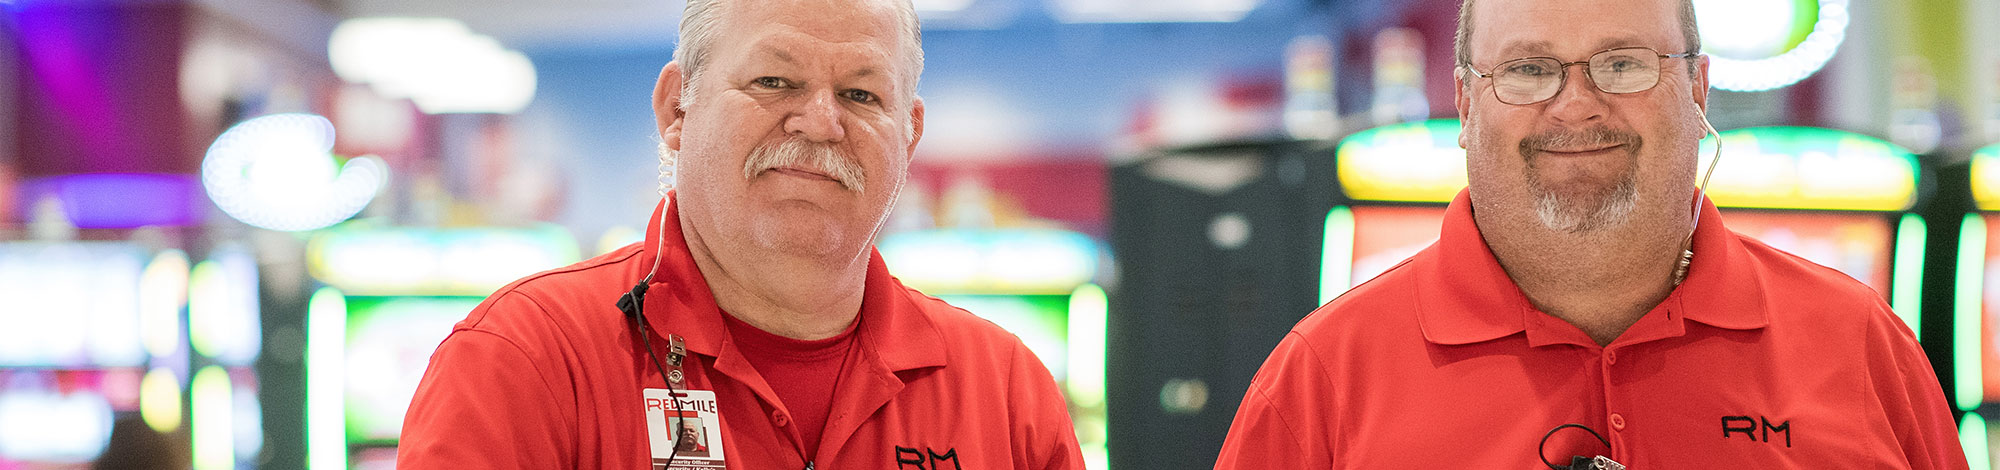 Two Red Mile employees